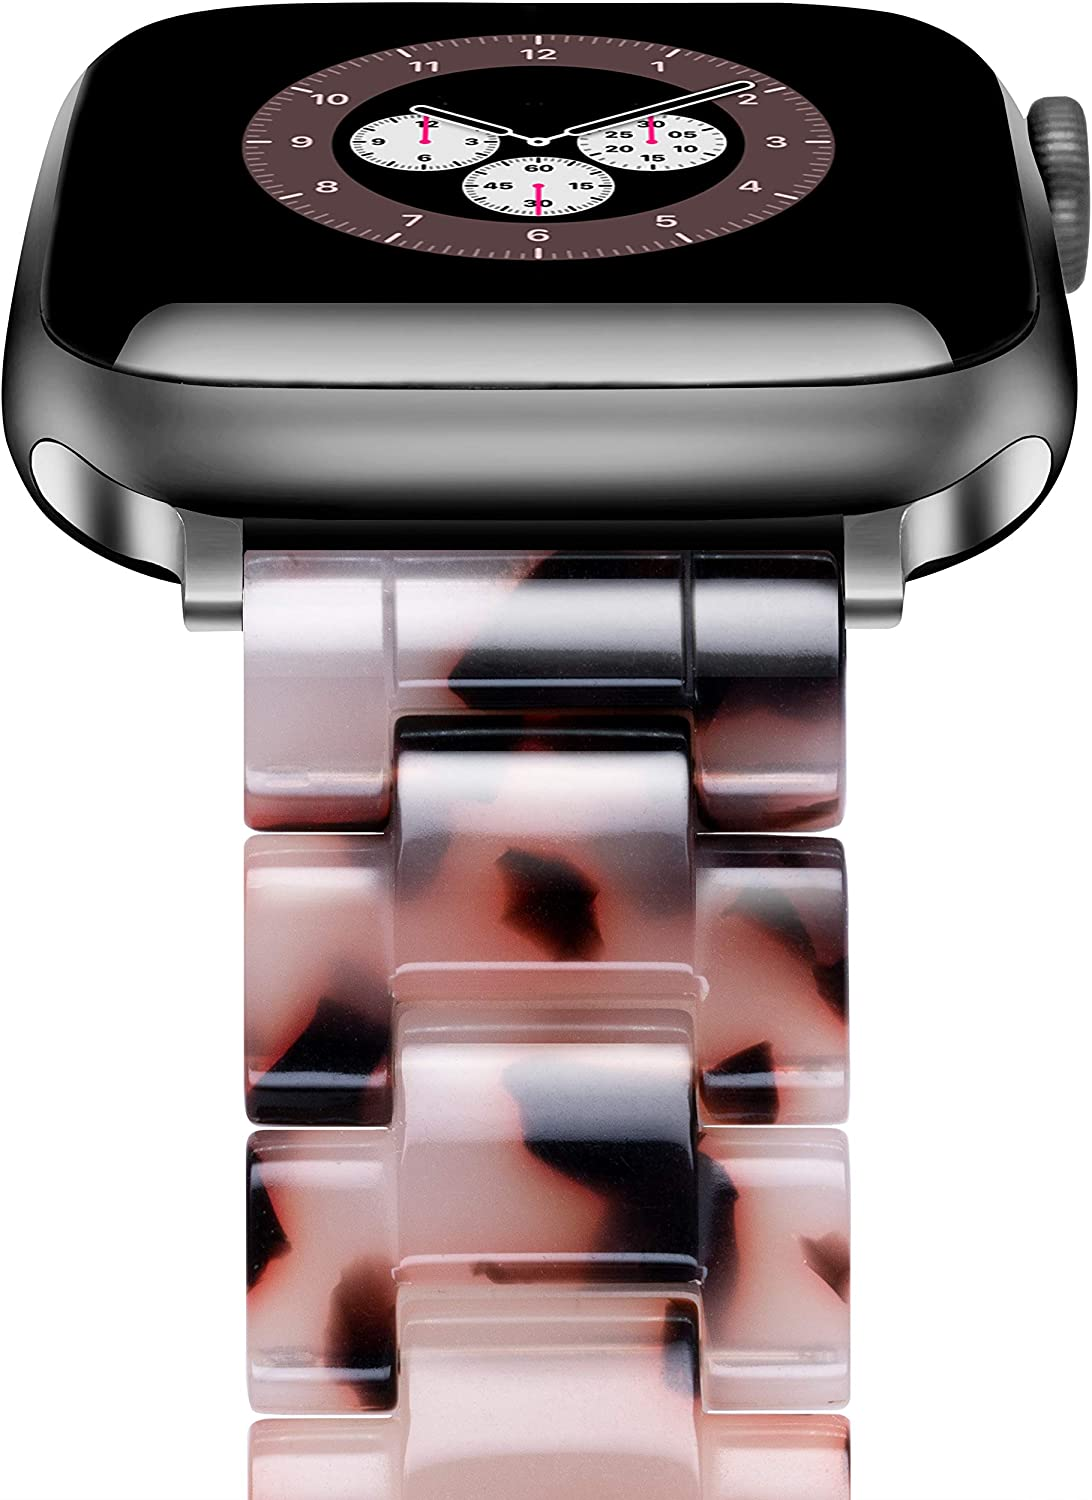 Caunedy Watch Band Compatible with Apple Watch 38mm/40mm for Women Man,Light Resin Bracelet Fashion Strap with Stainless Steel Buckle for iWatch Series 6/5/4/3/2/1/SE (Black Grey, 38/40mm)